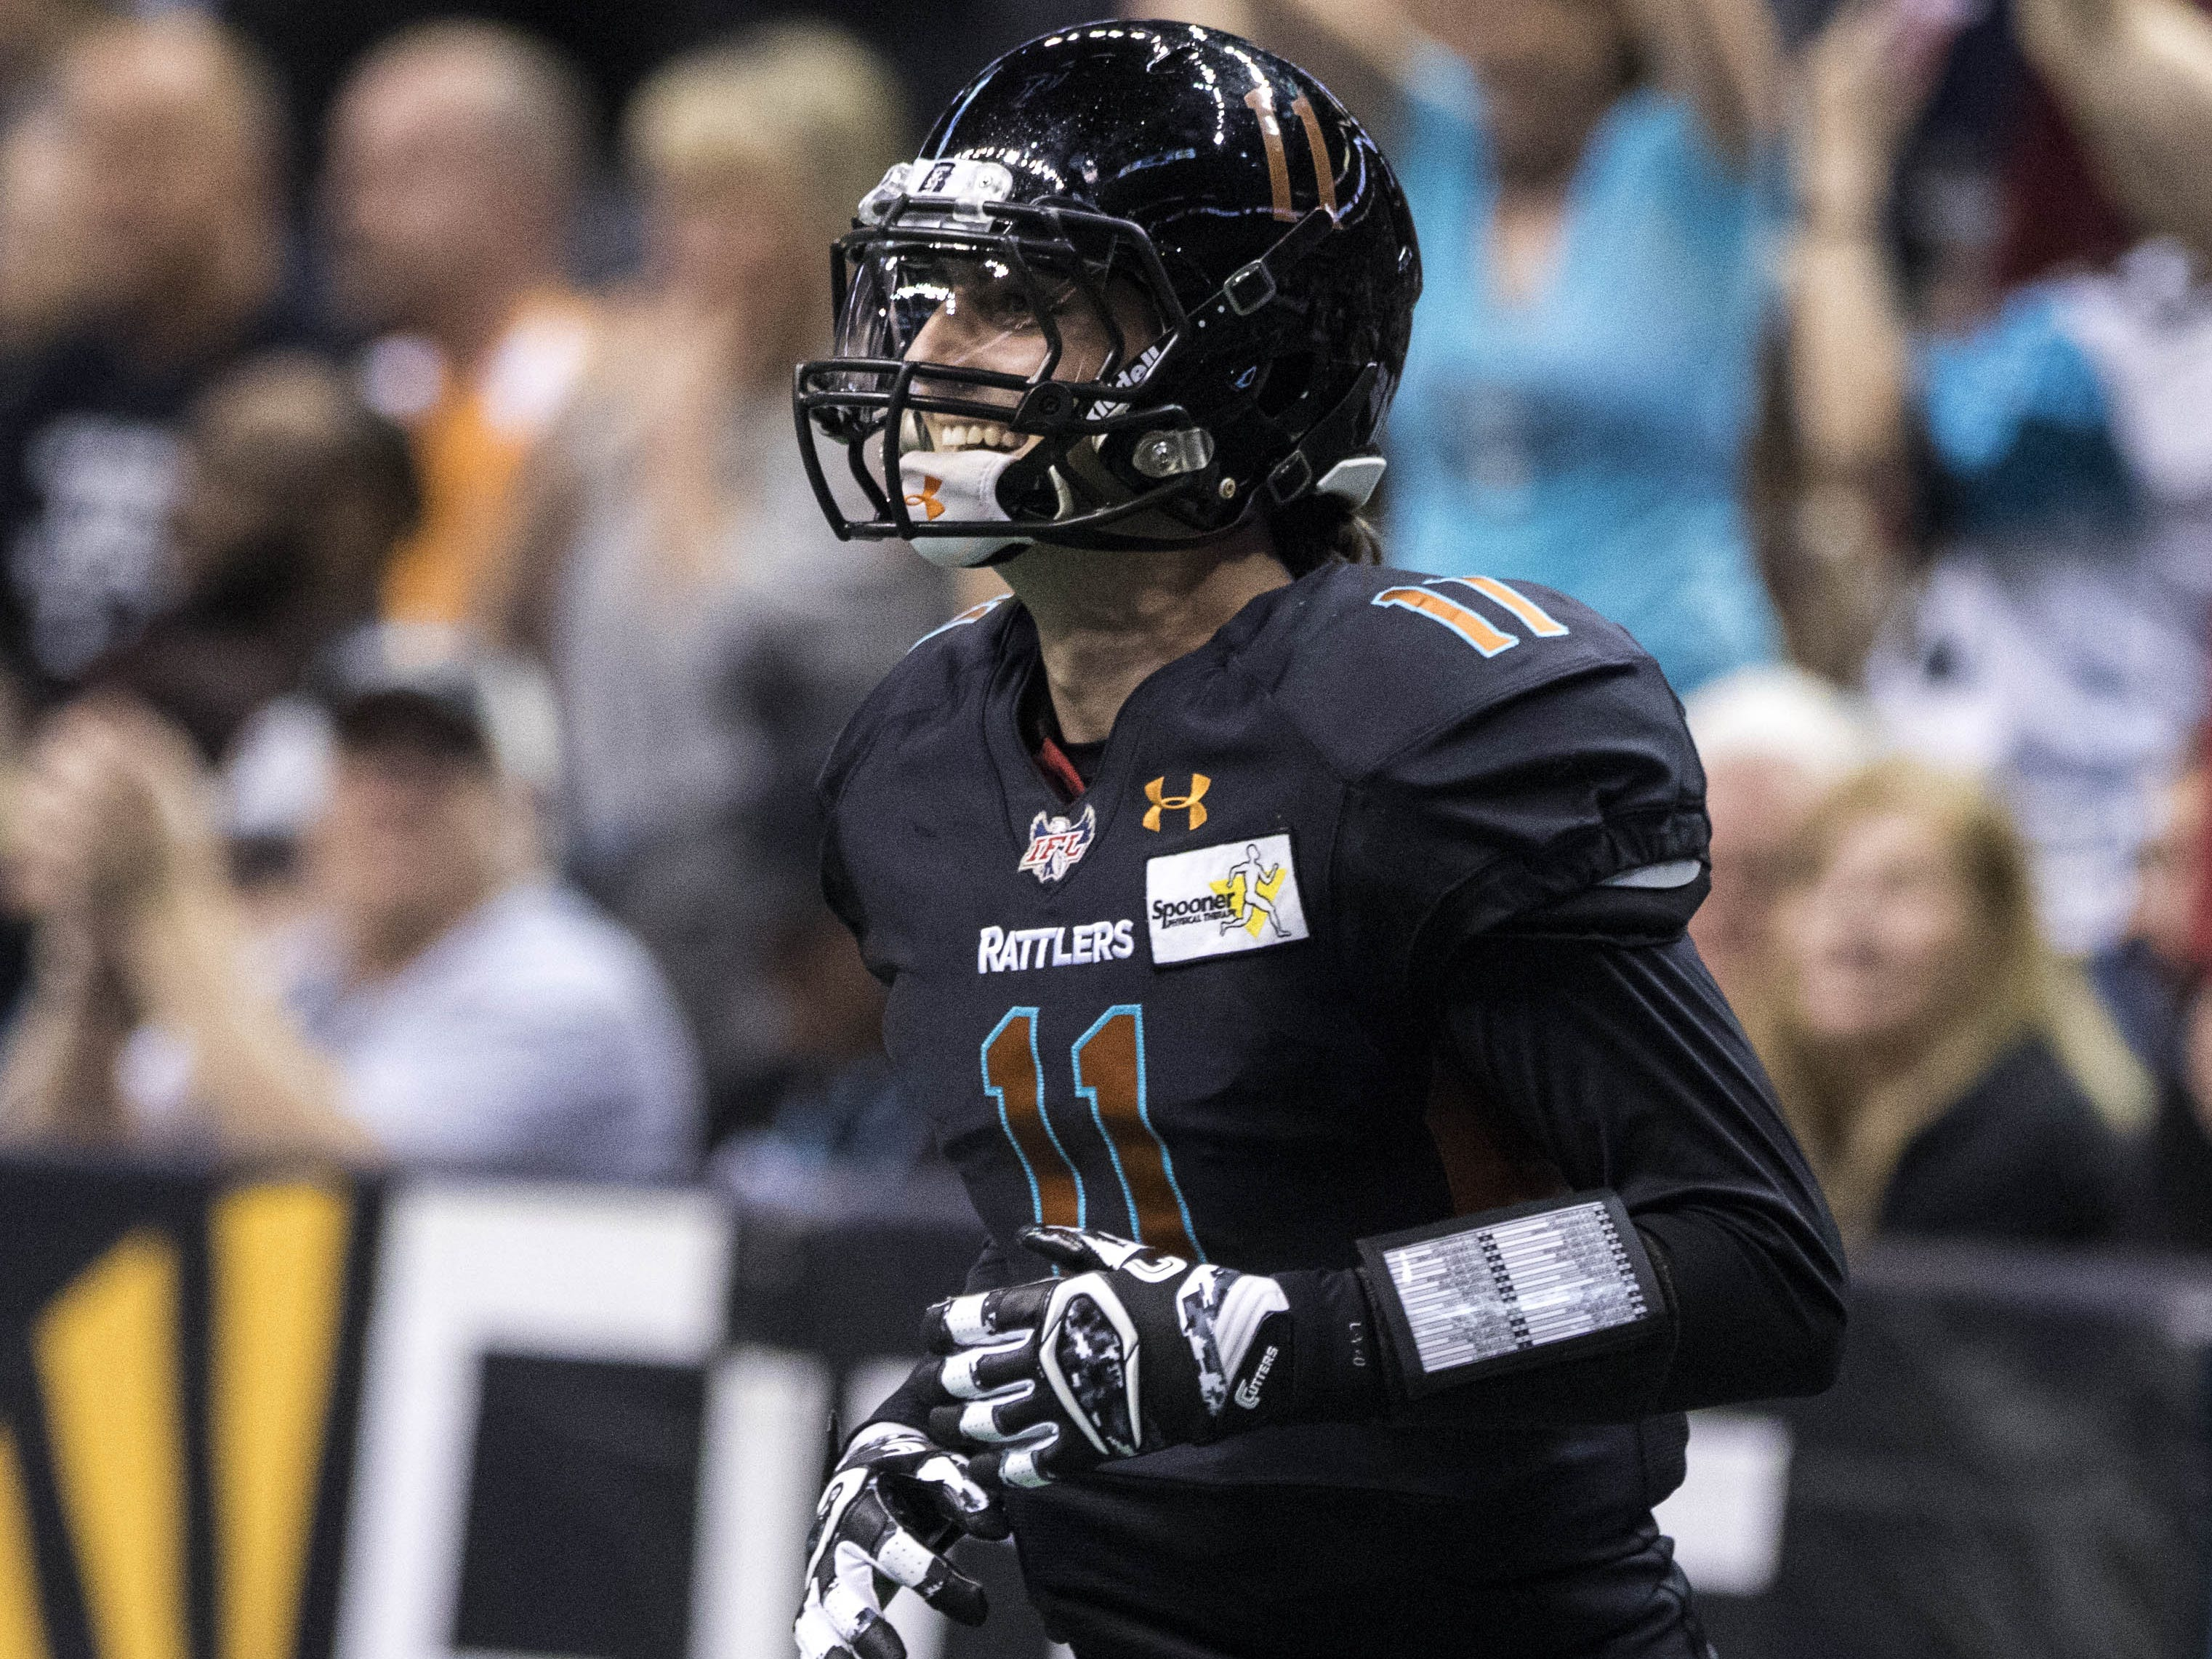 Arizona Rattlers' Jeff Ziemba (11) is all smiles after Jabre Lolley (21) scored a touchdown against the Cedar Rapids River Kings during the second half of their game at Talking Stick Resort Arena in Phoenix, Sunday, March 3, 2019.